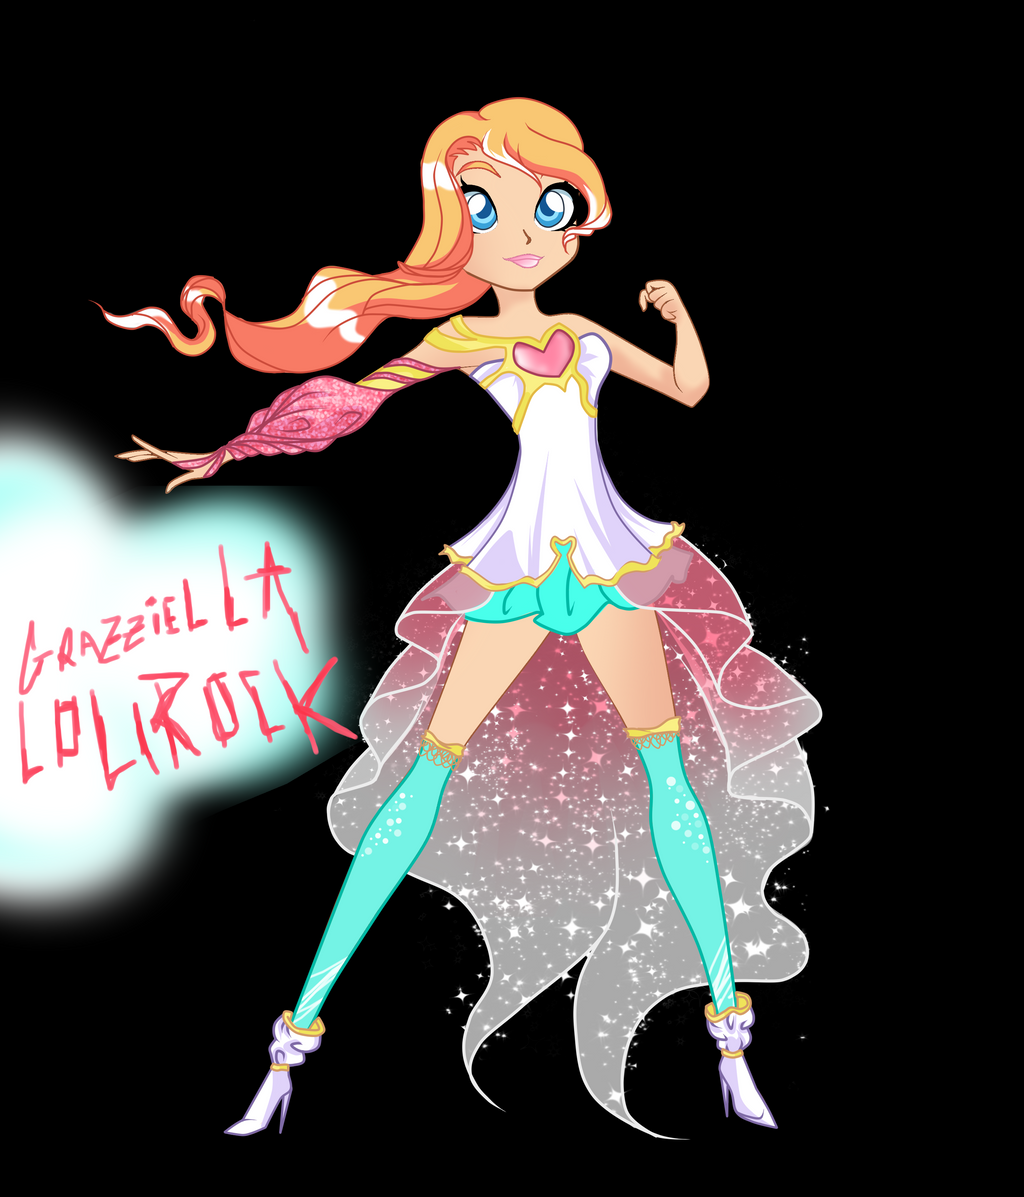 caboulla 20 9 Grazziela lolirock by caboulla